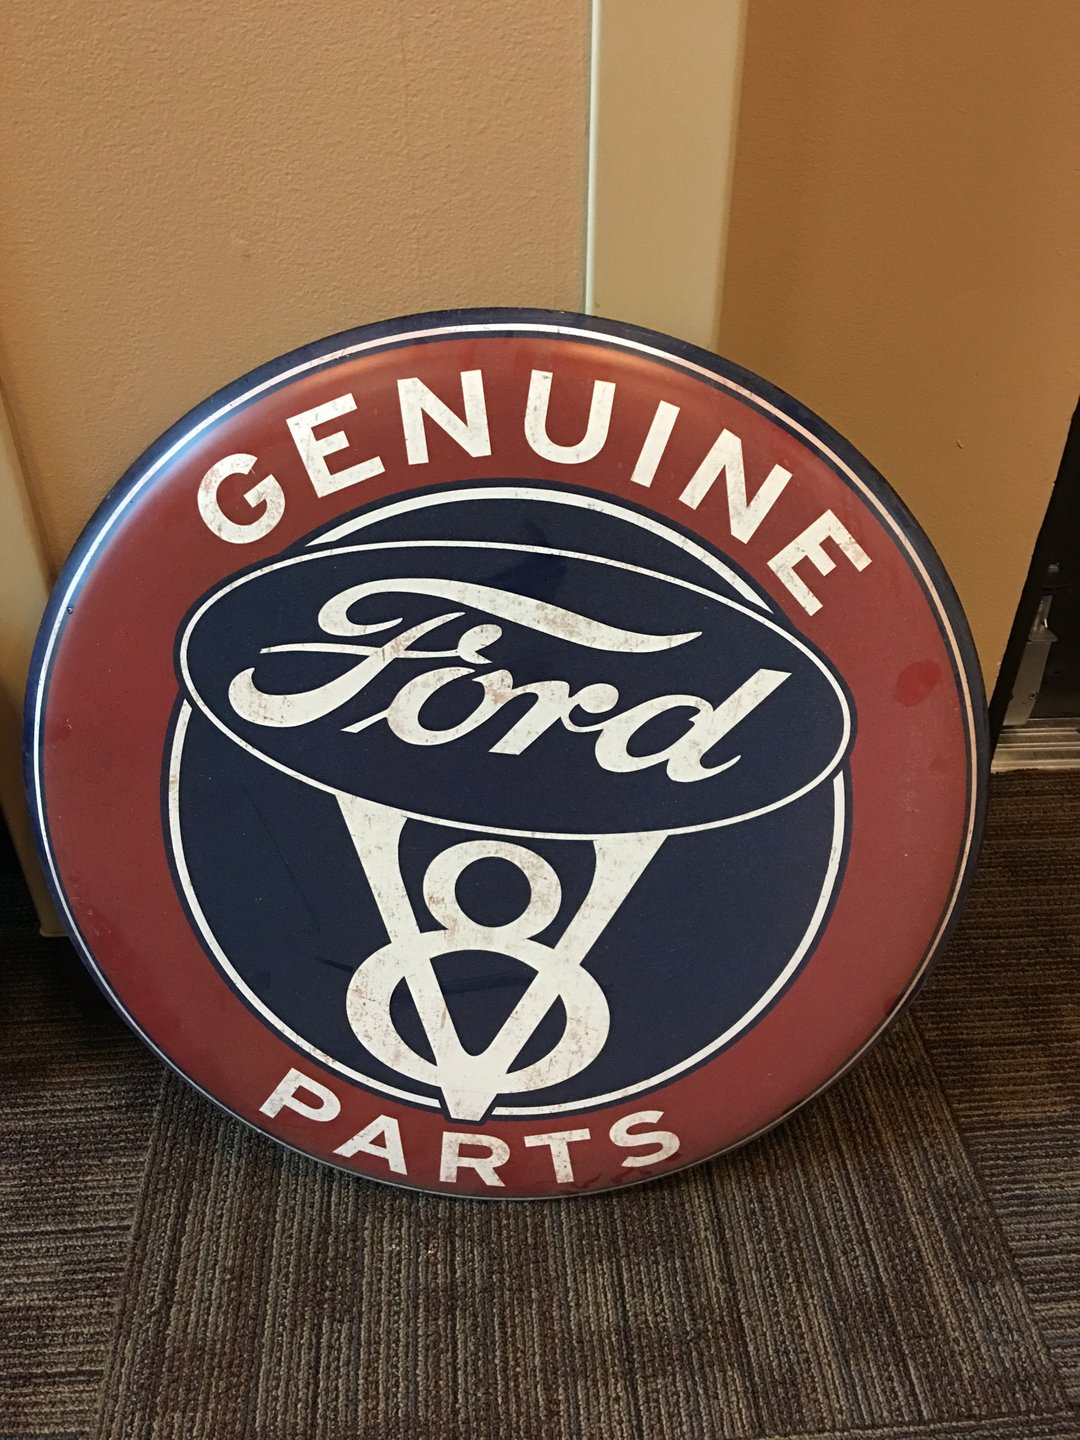 Genuine ford v8 parts button sign